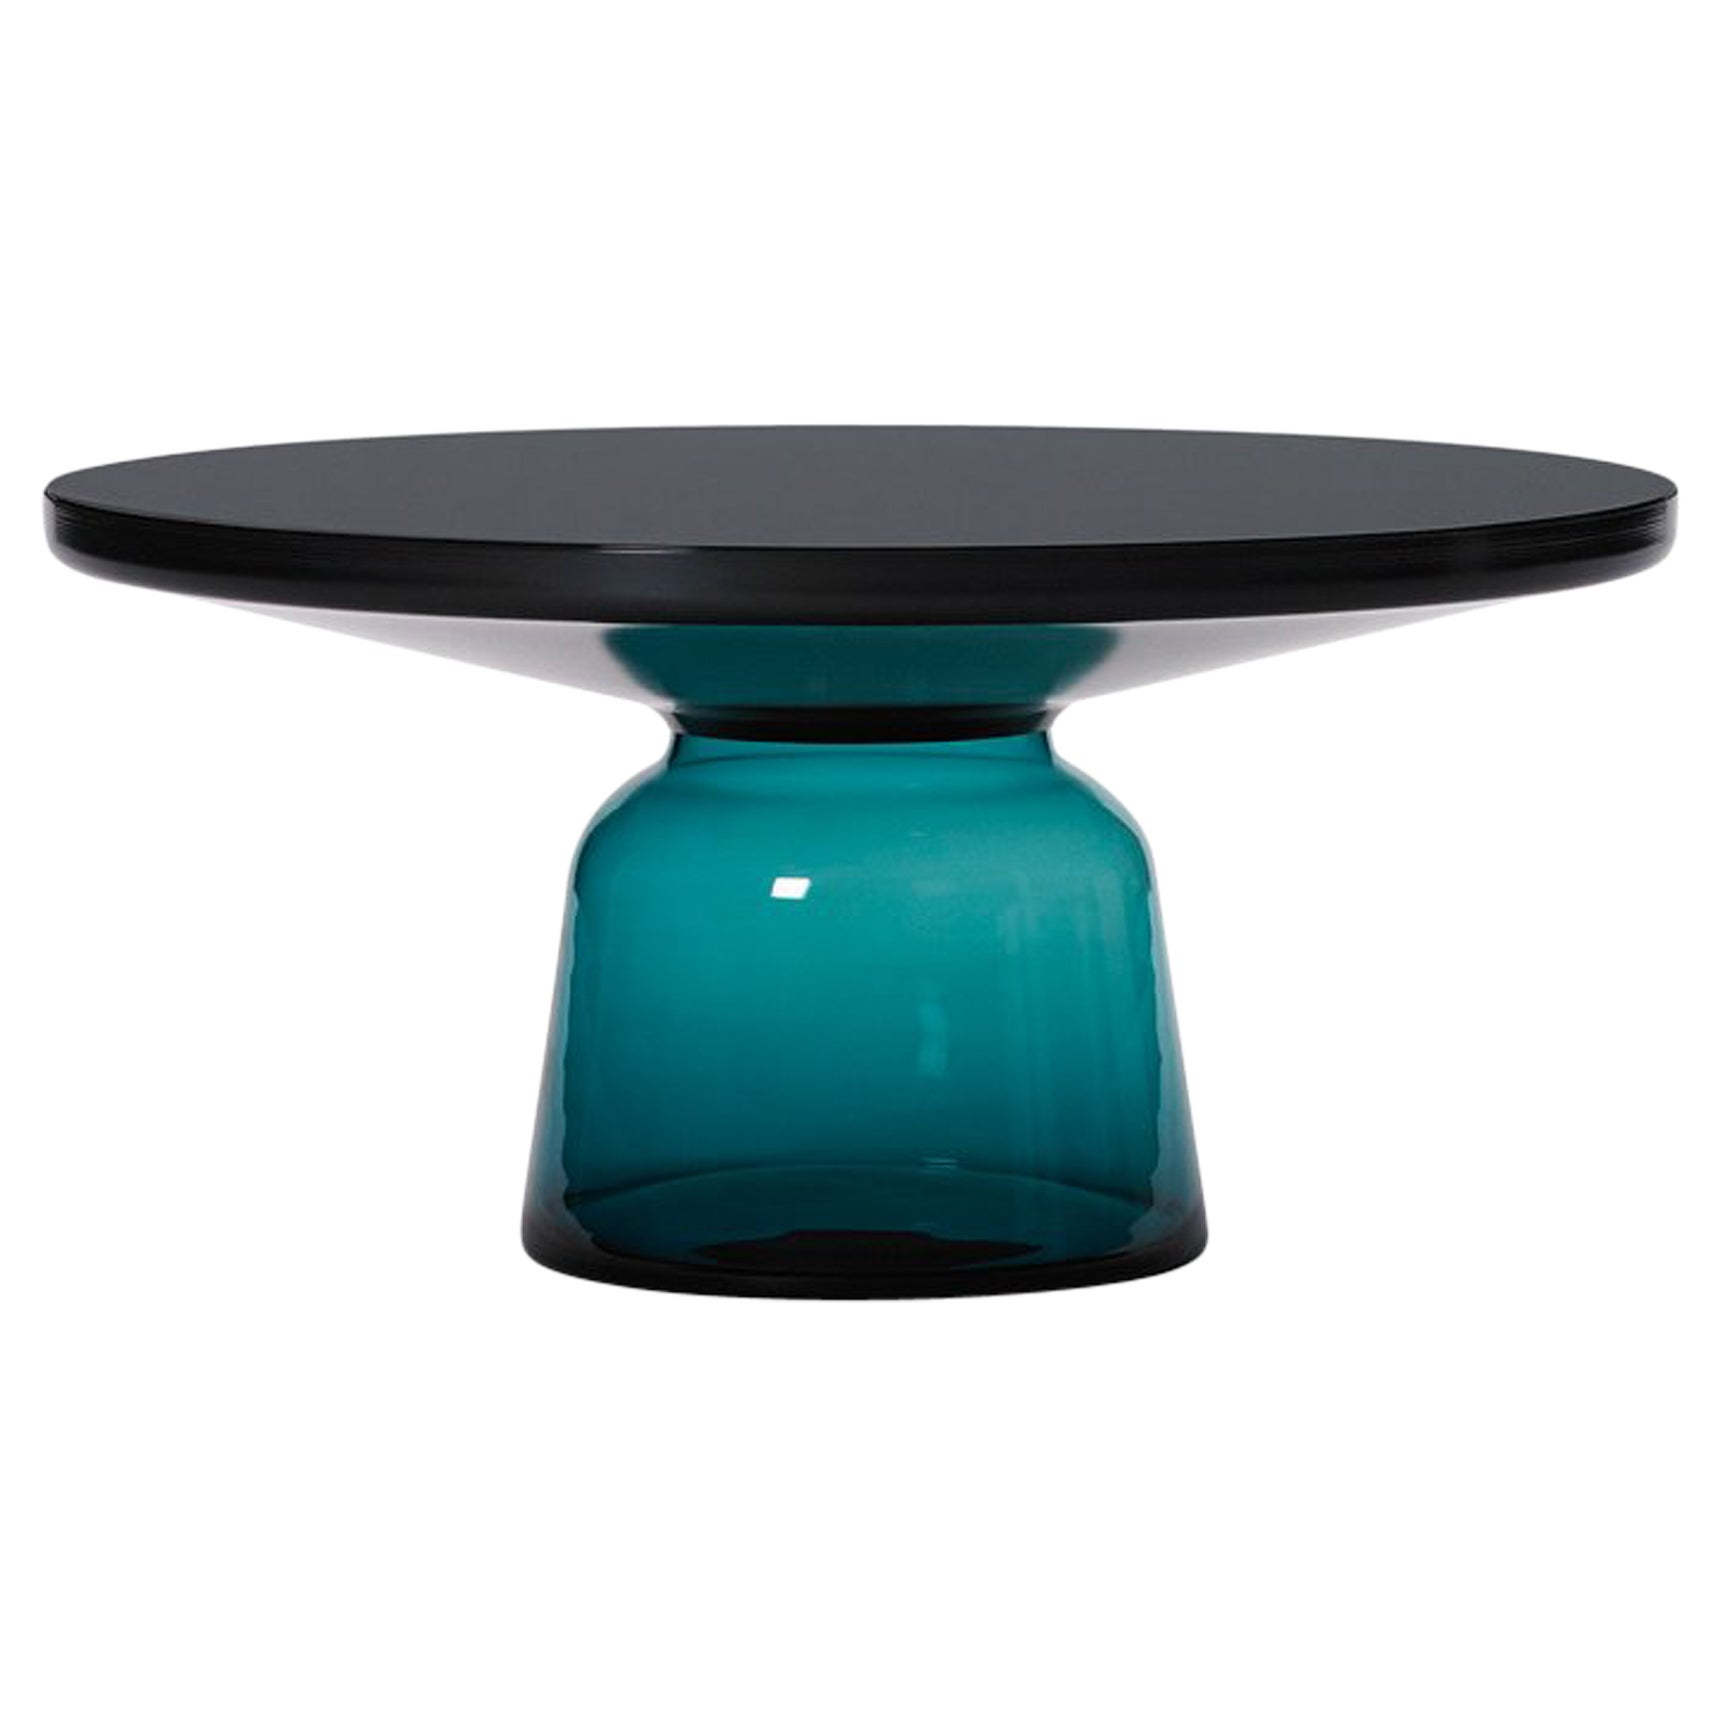 ClassiCon Bell Coffee Table in Black and Montana Blue by Sebastian Herkner